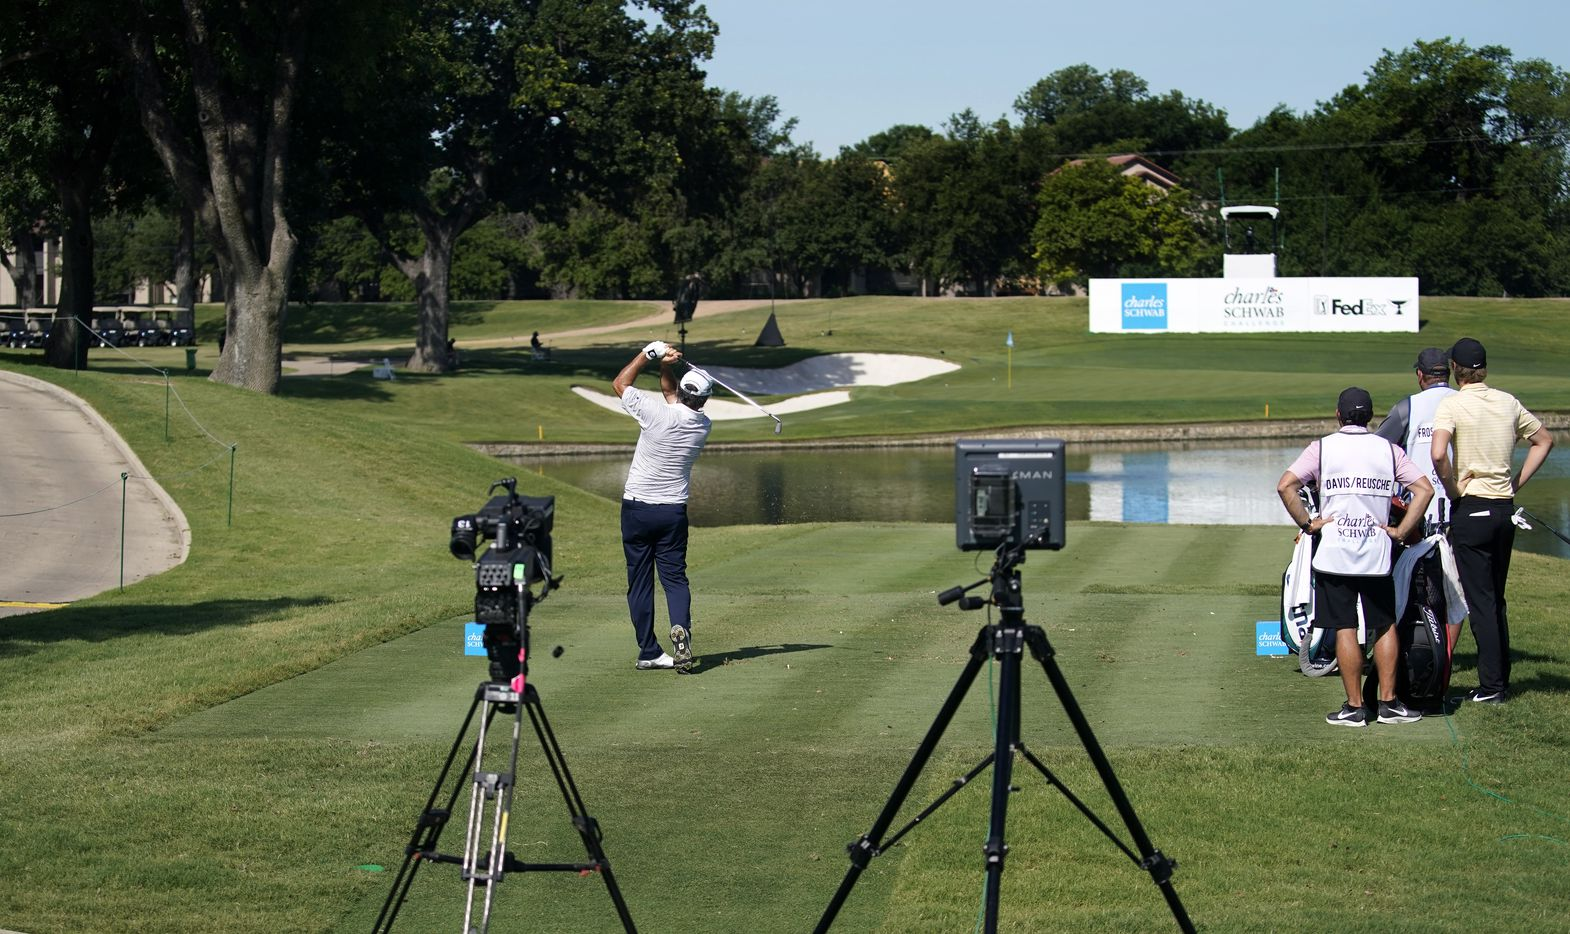 With no fans around the 13th tee box, PGA Tour golfer David Frost watches his shot across the pond during the second round of the Charles Schwab Challenge at the Colonial Country Club in Fort Worth, Friday, June 12, 2020.  The Challenge is the first tour event since the COVID-19 pandemic began. (Tom Fox/The Dallas Morning News)